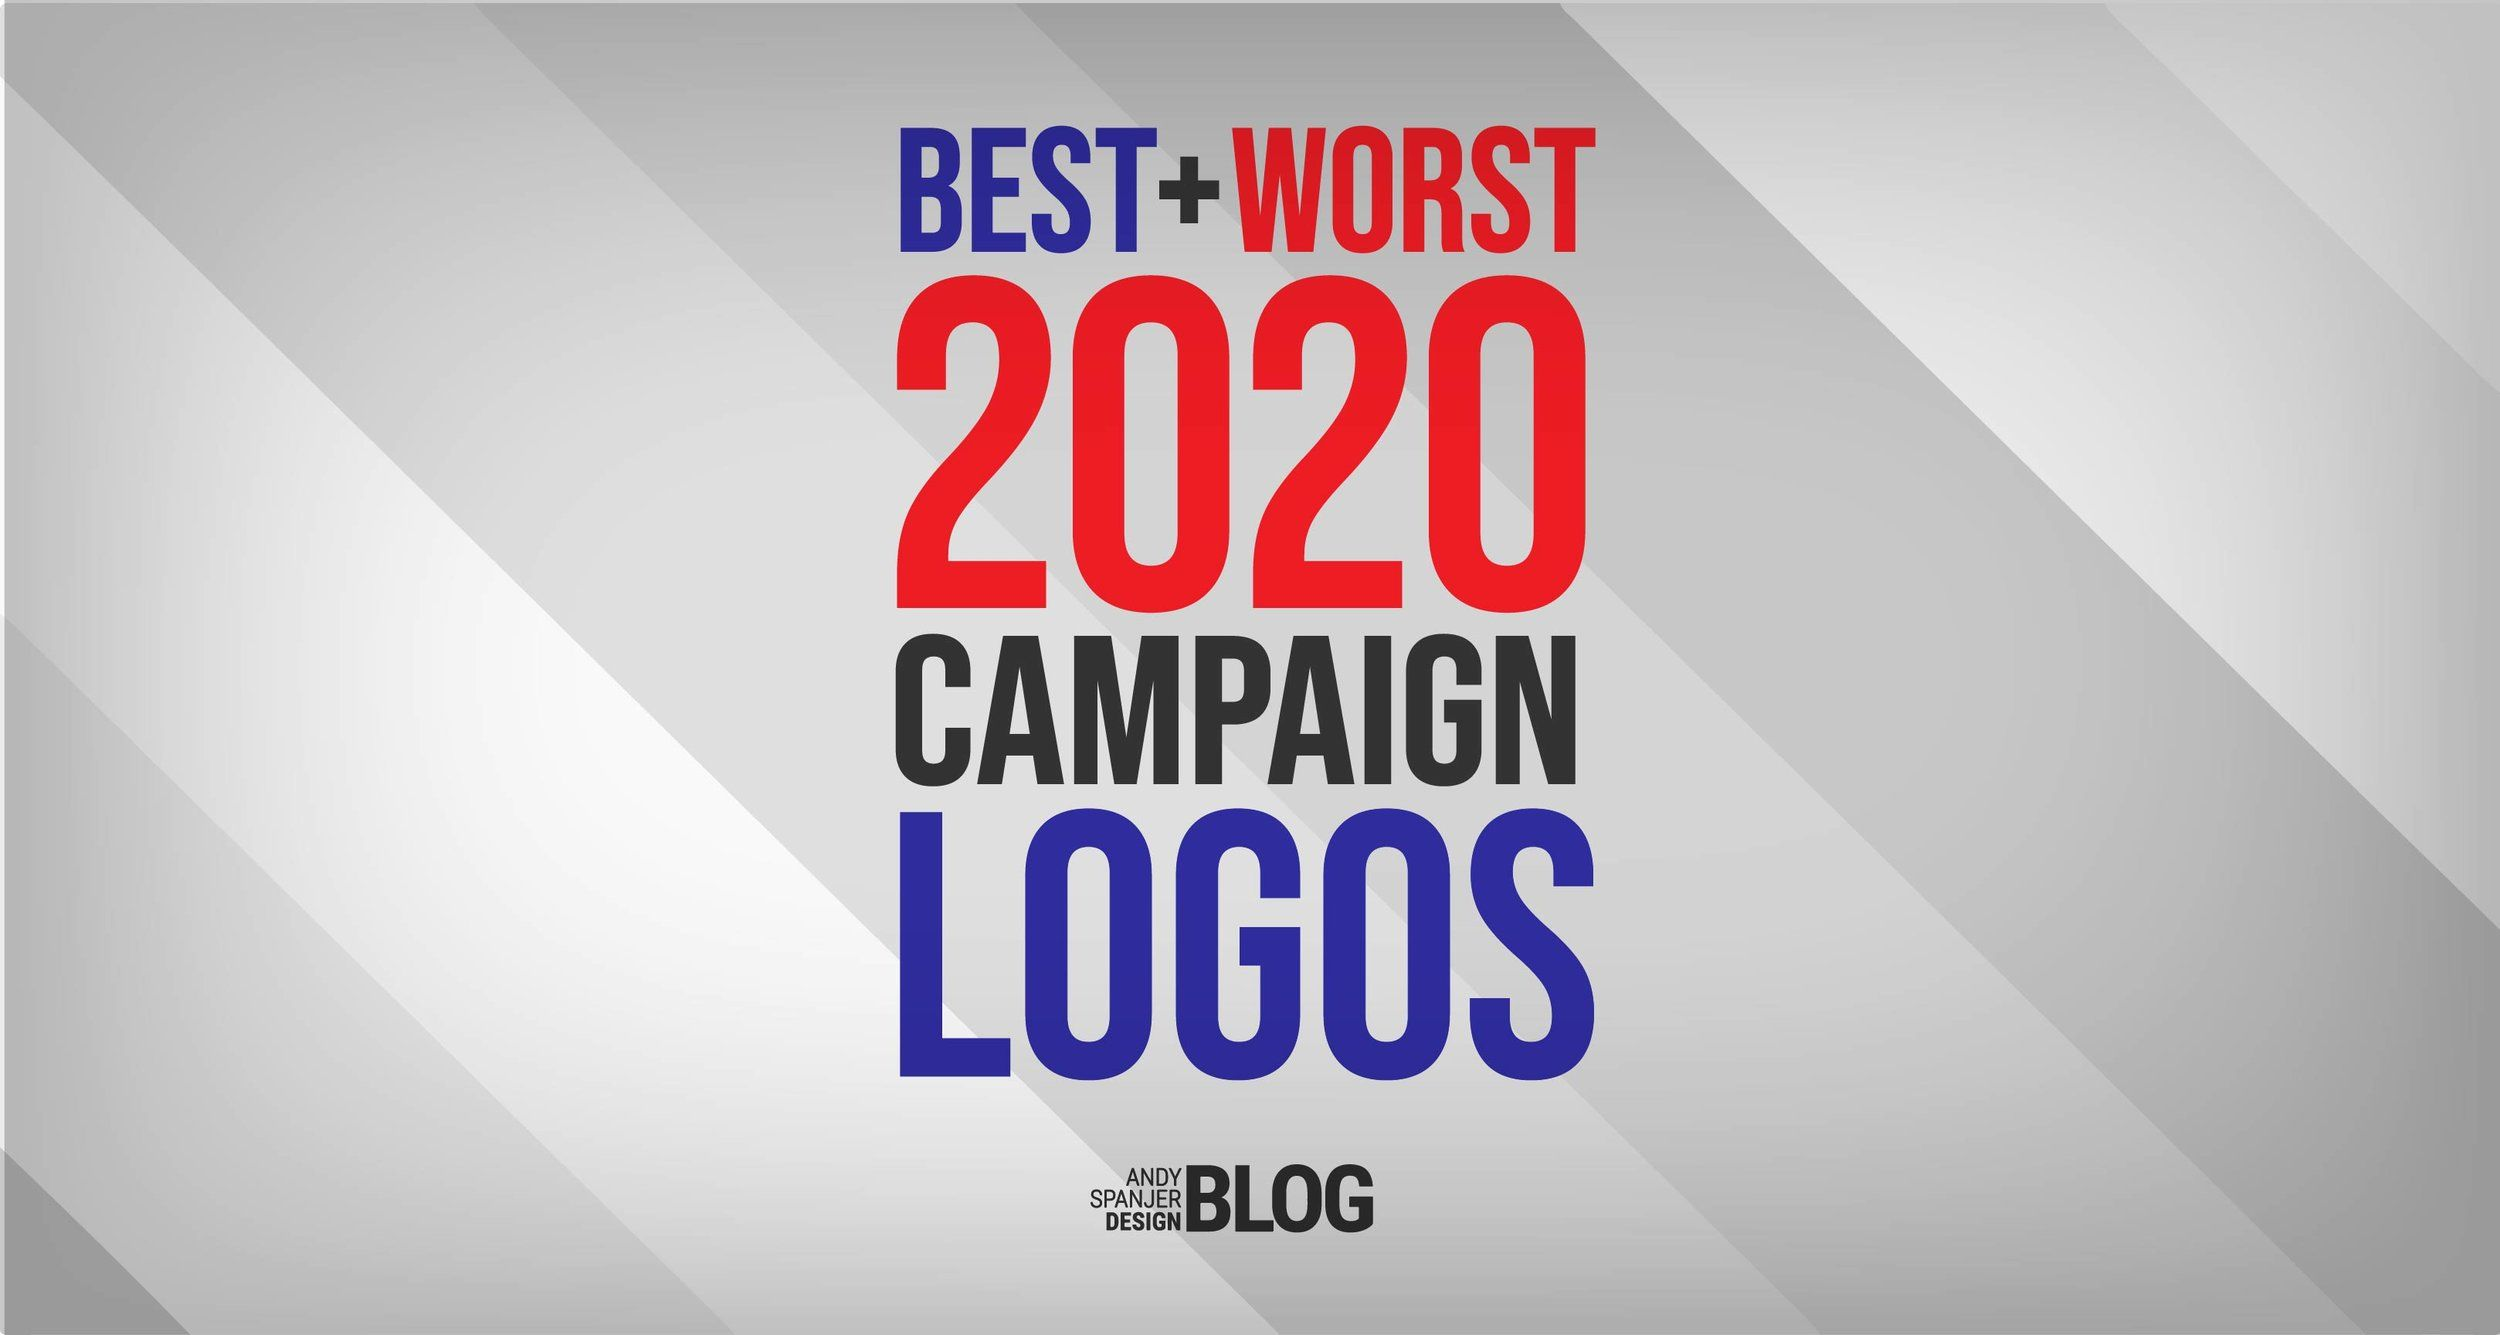 Best Blog Designs 2020 The Best & Worst 2020 Campaign Logos (so far) | Some Of My